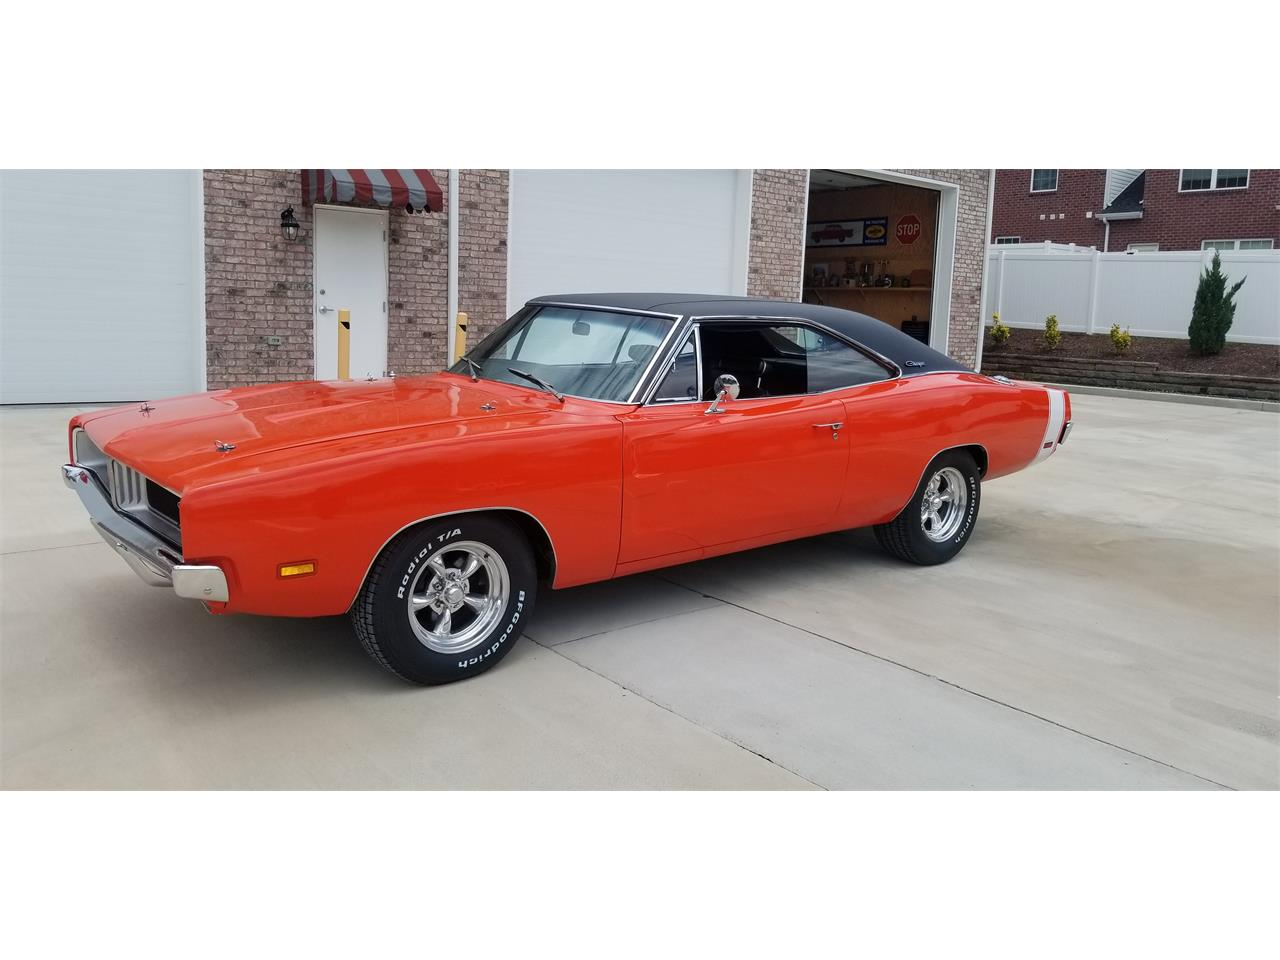 Large Picture of Classic 1969 Dodge Charger located in Smyrna Tennessee - $47,500.00 - Q45J